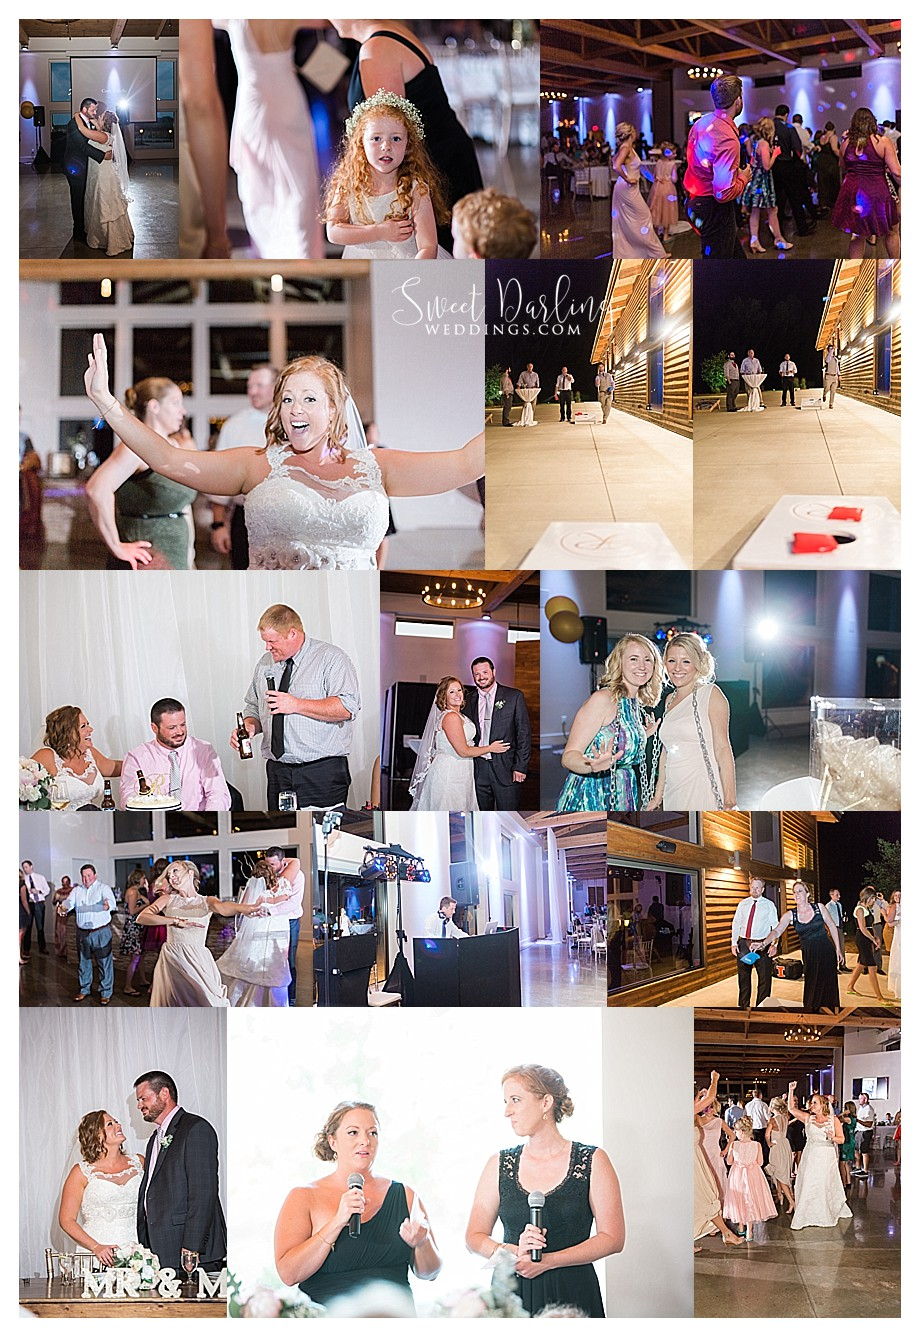 Dancing at Pear Tree wedding reception